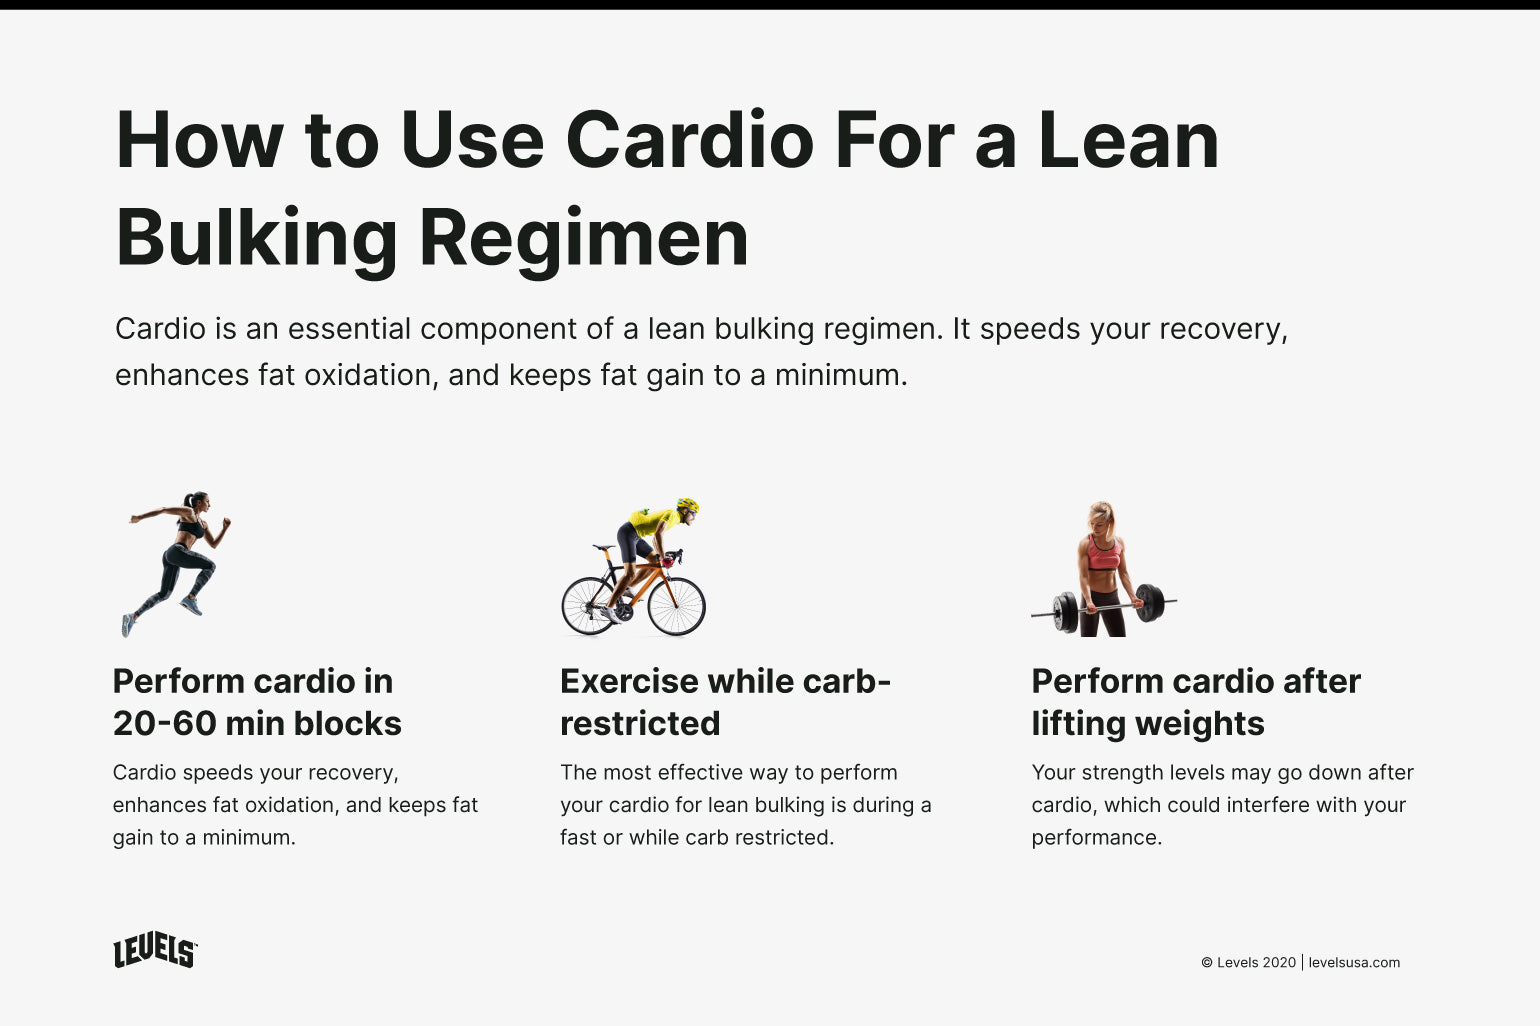 Cardio For Lean Bulking - Infographic